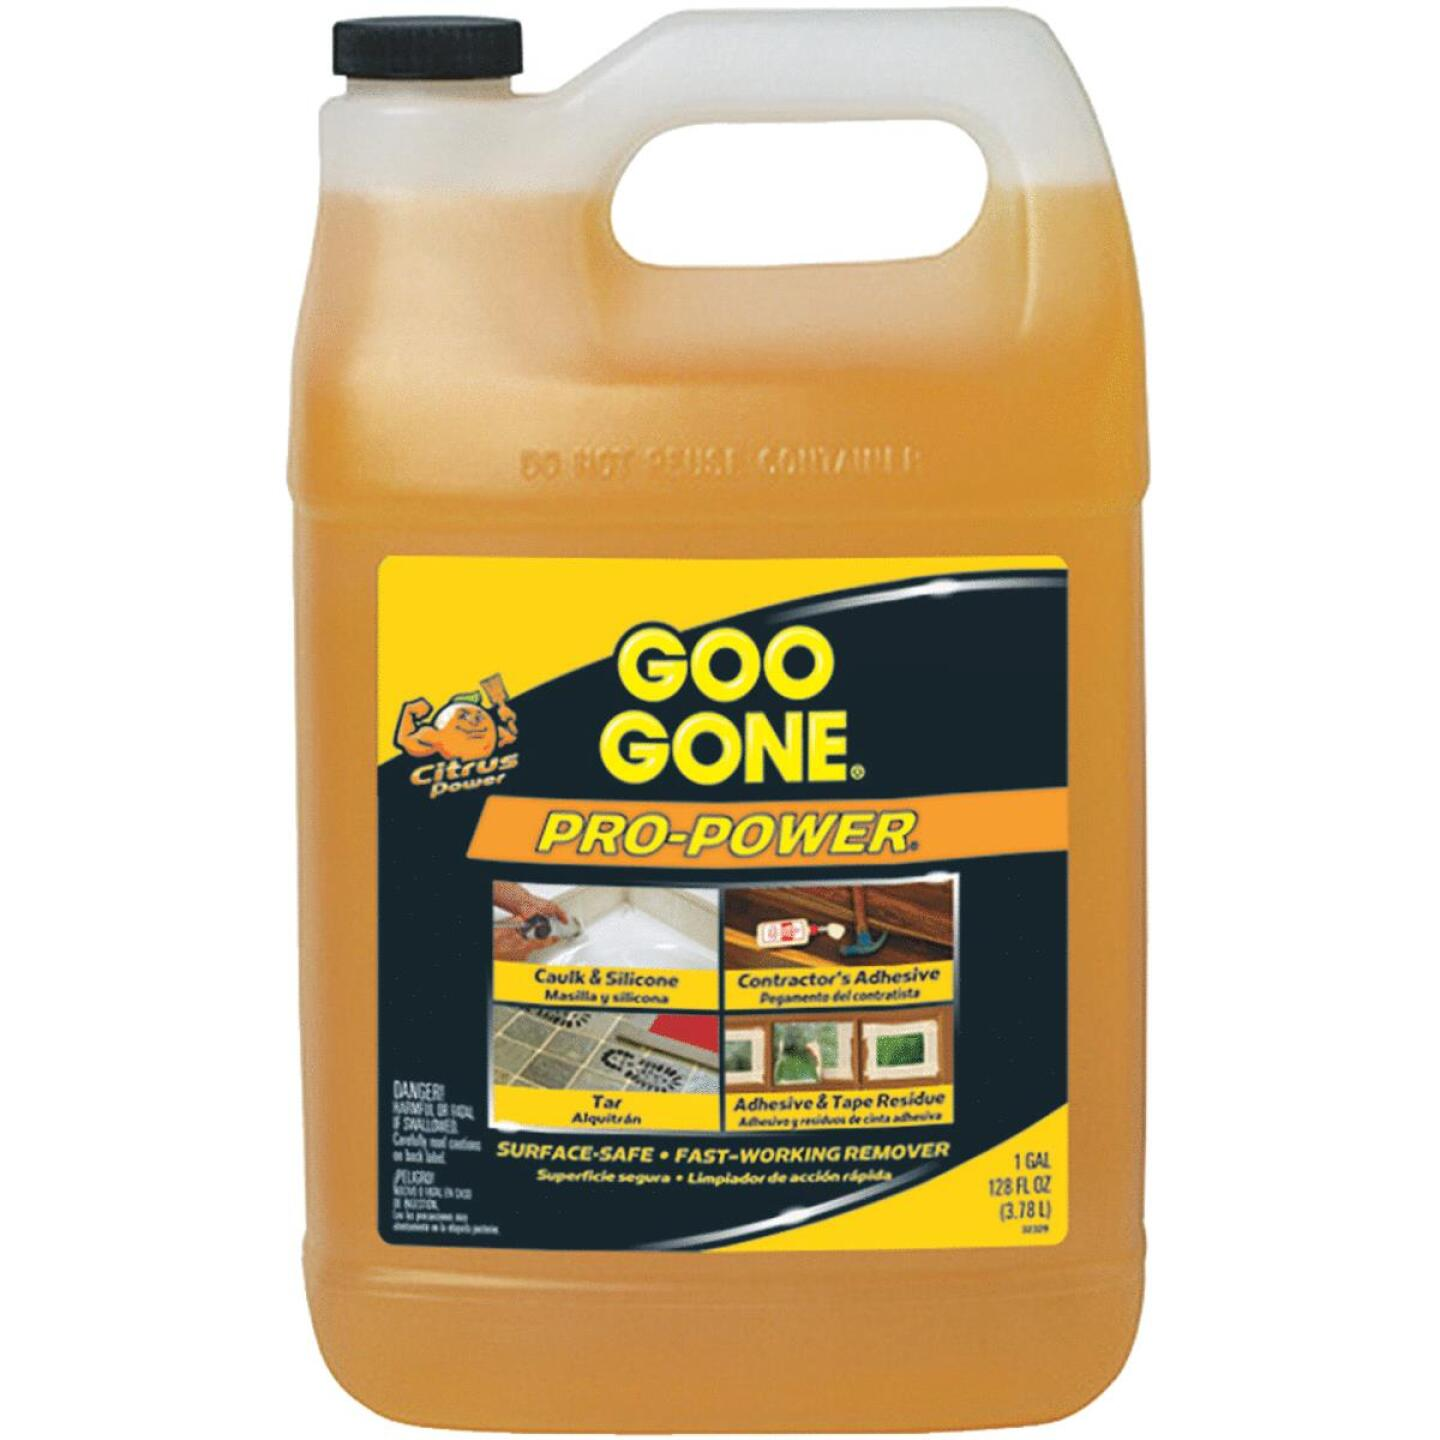 Goo Gone 1 Gal. Pro-Power Adhesive Remover Image 201